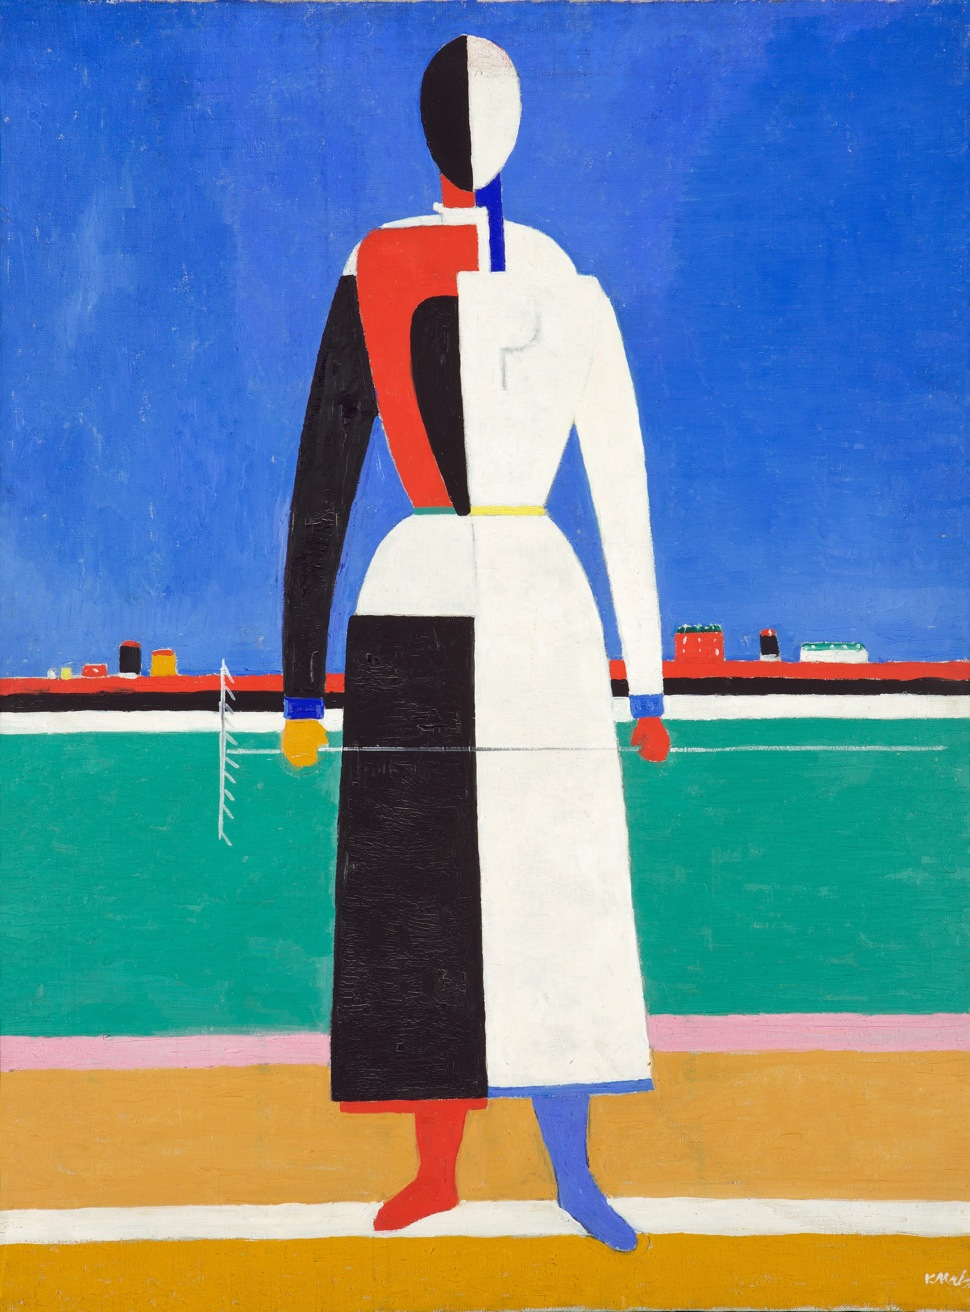 kazimir_malevich_woman_with_rake_1930-32.jpg